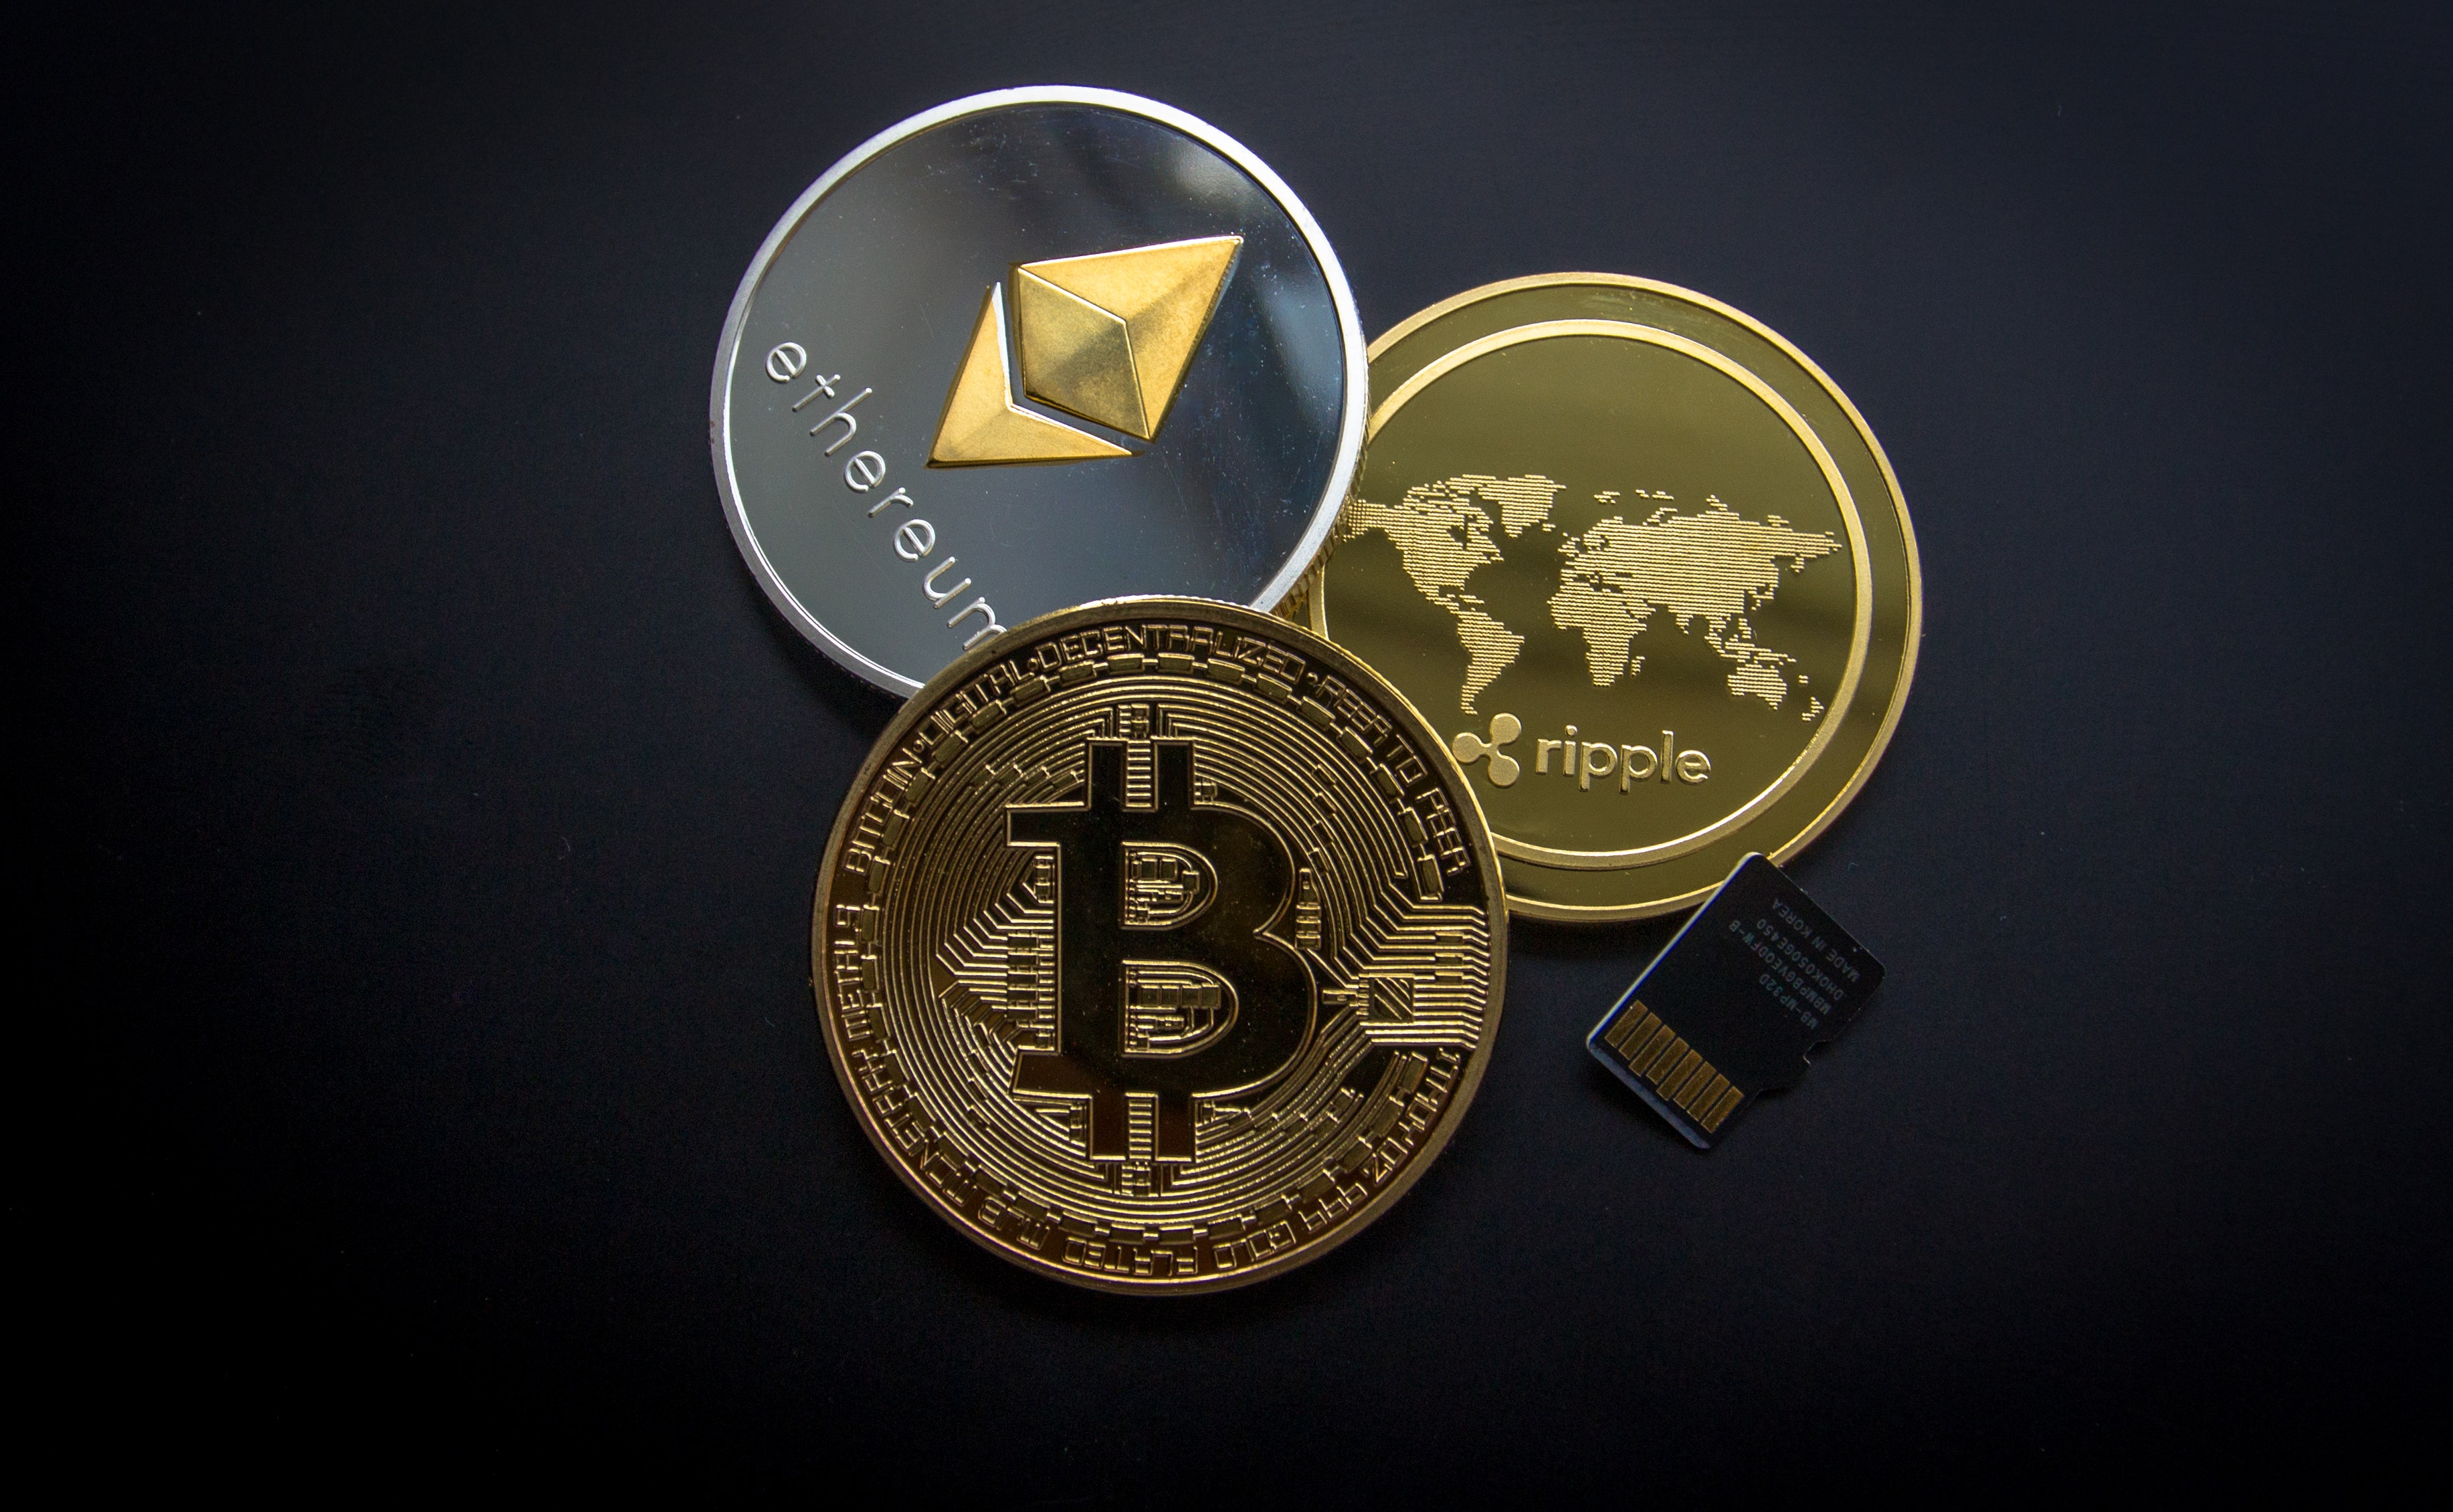 Can you sell airline miles for Bitcoin?